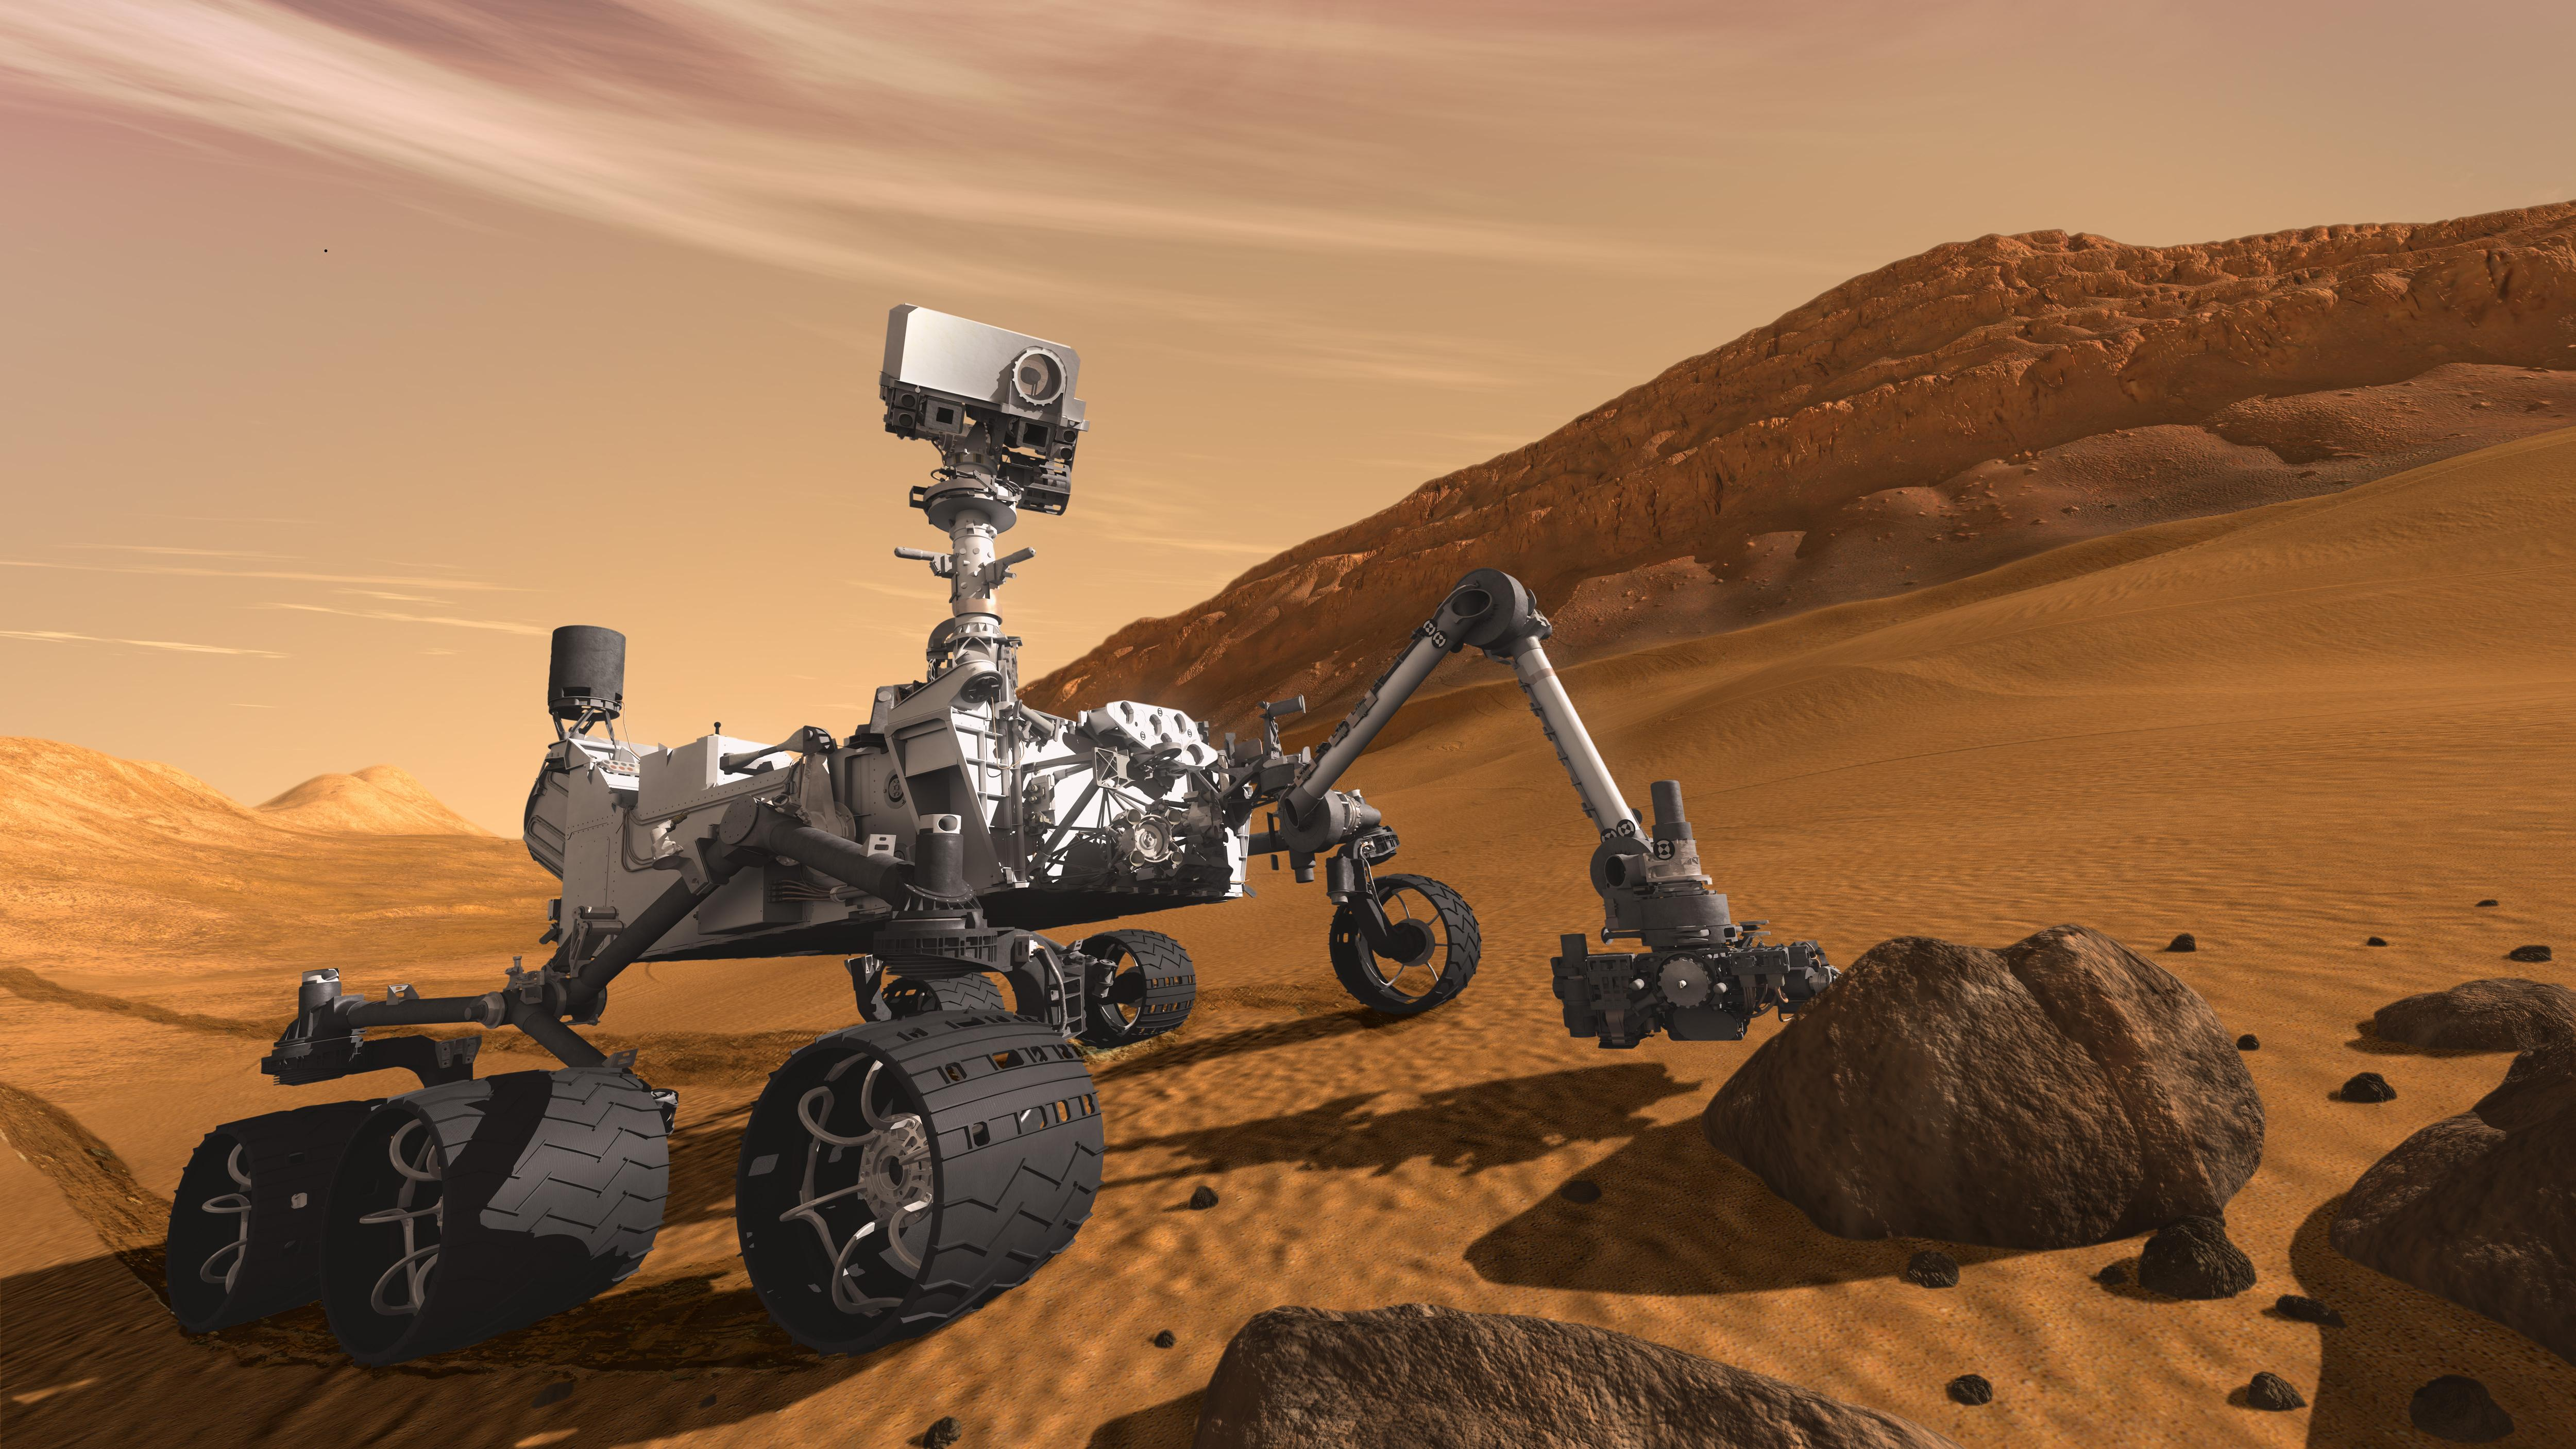 What was the name of last rover spacecraft for mars mission?